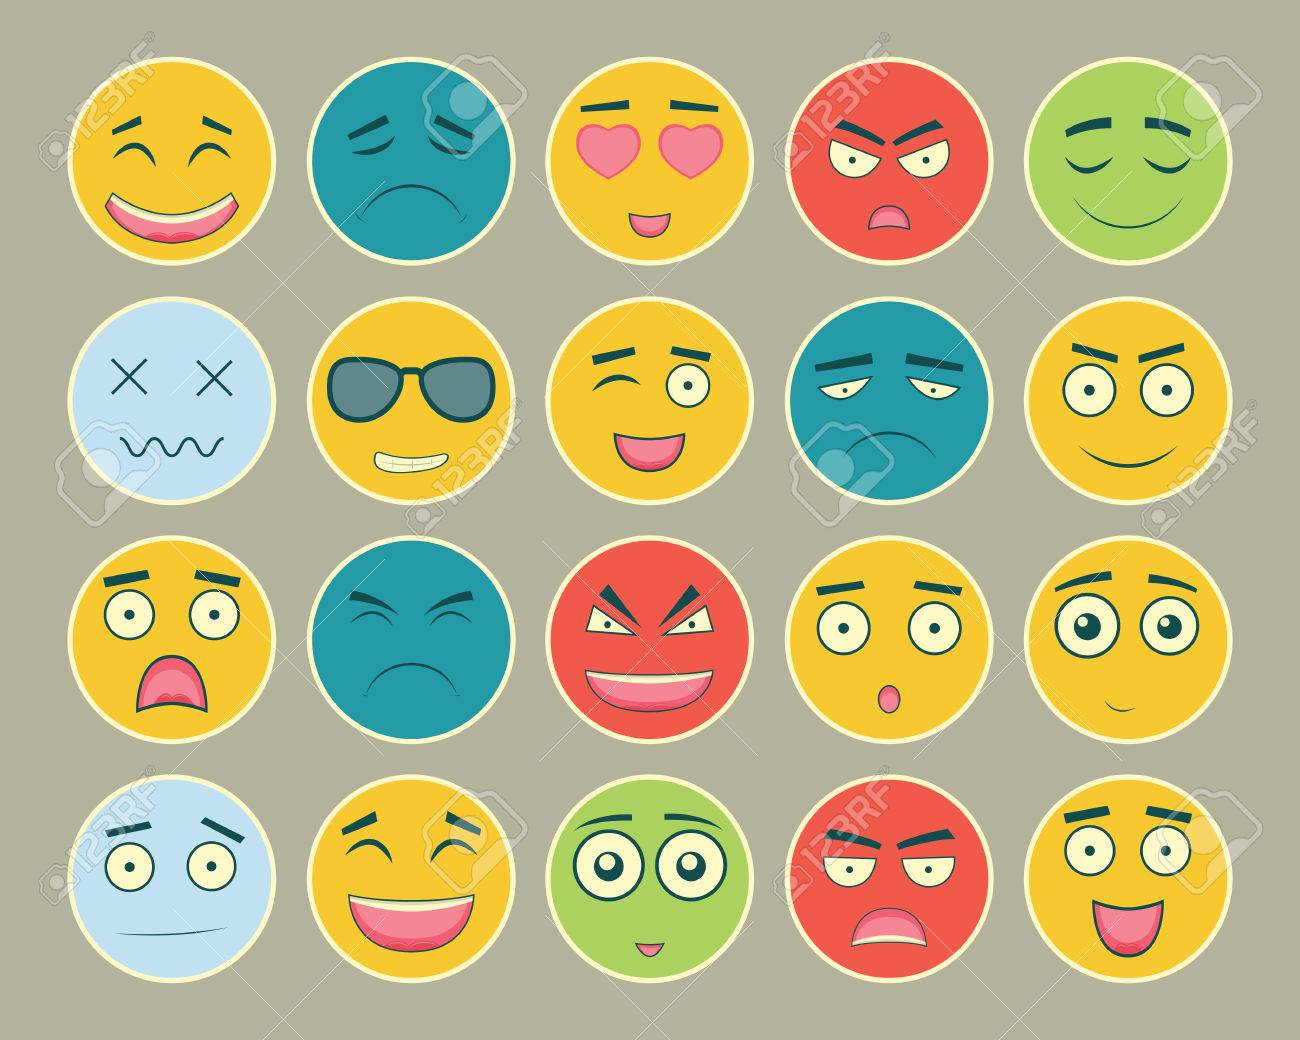 Emoticons flat design set emoticon for web site chat sms emoticons flat design set emoticon for web site chat sms emoticons icons biocorpaavc Image collections